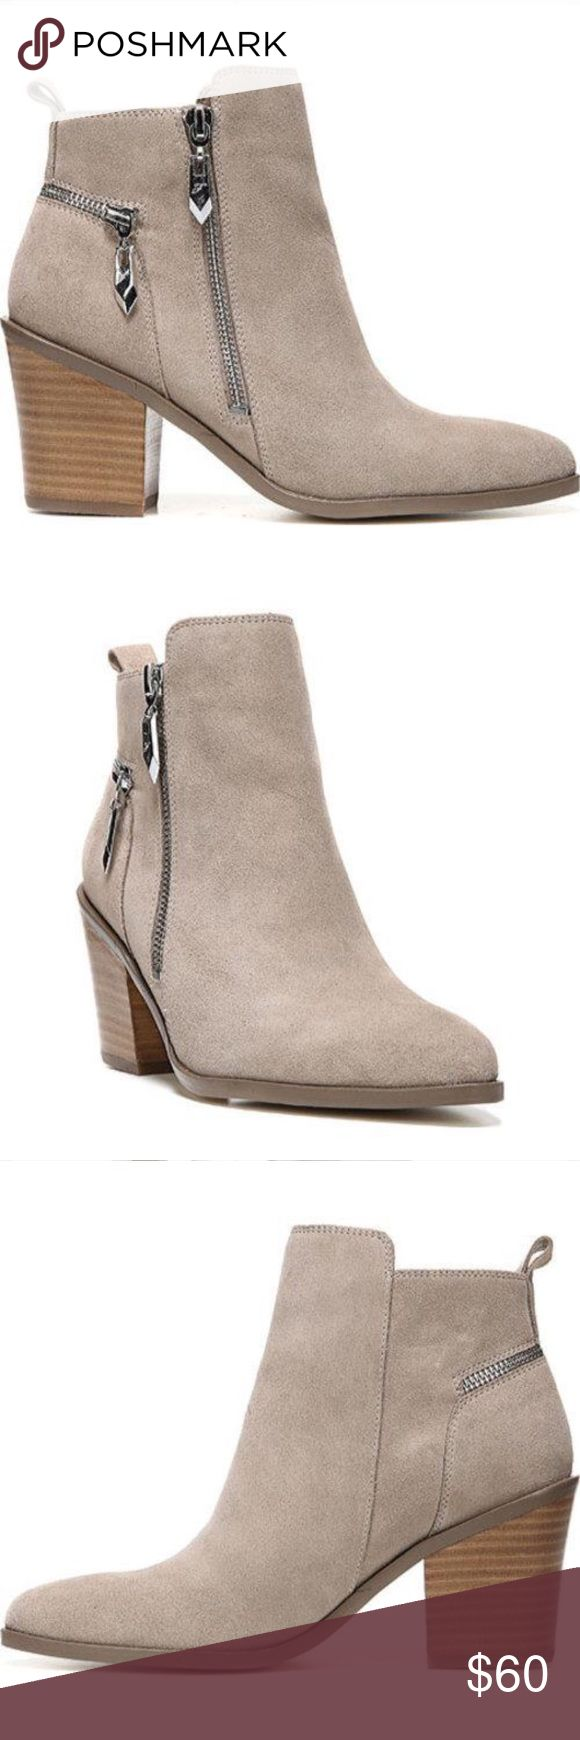 New fergie boots Super cute fergie boots! Goes with so much! Fergie Shoes